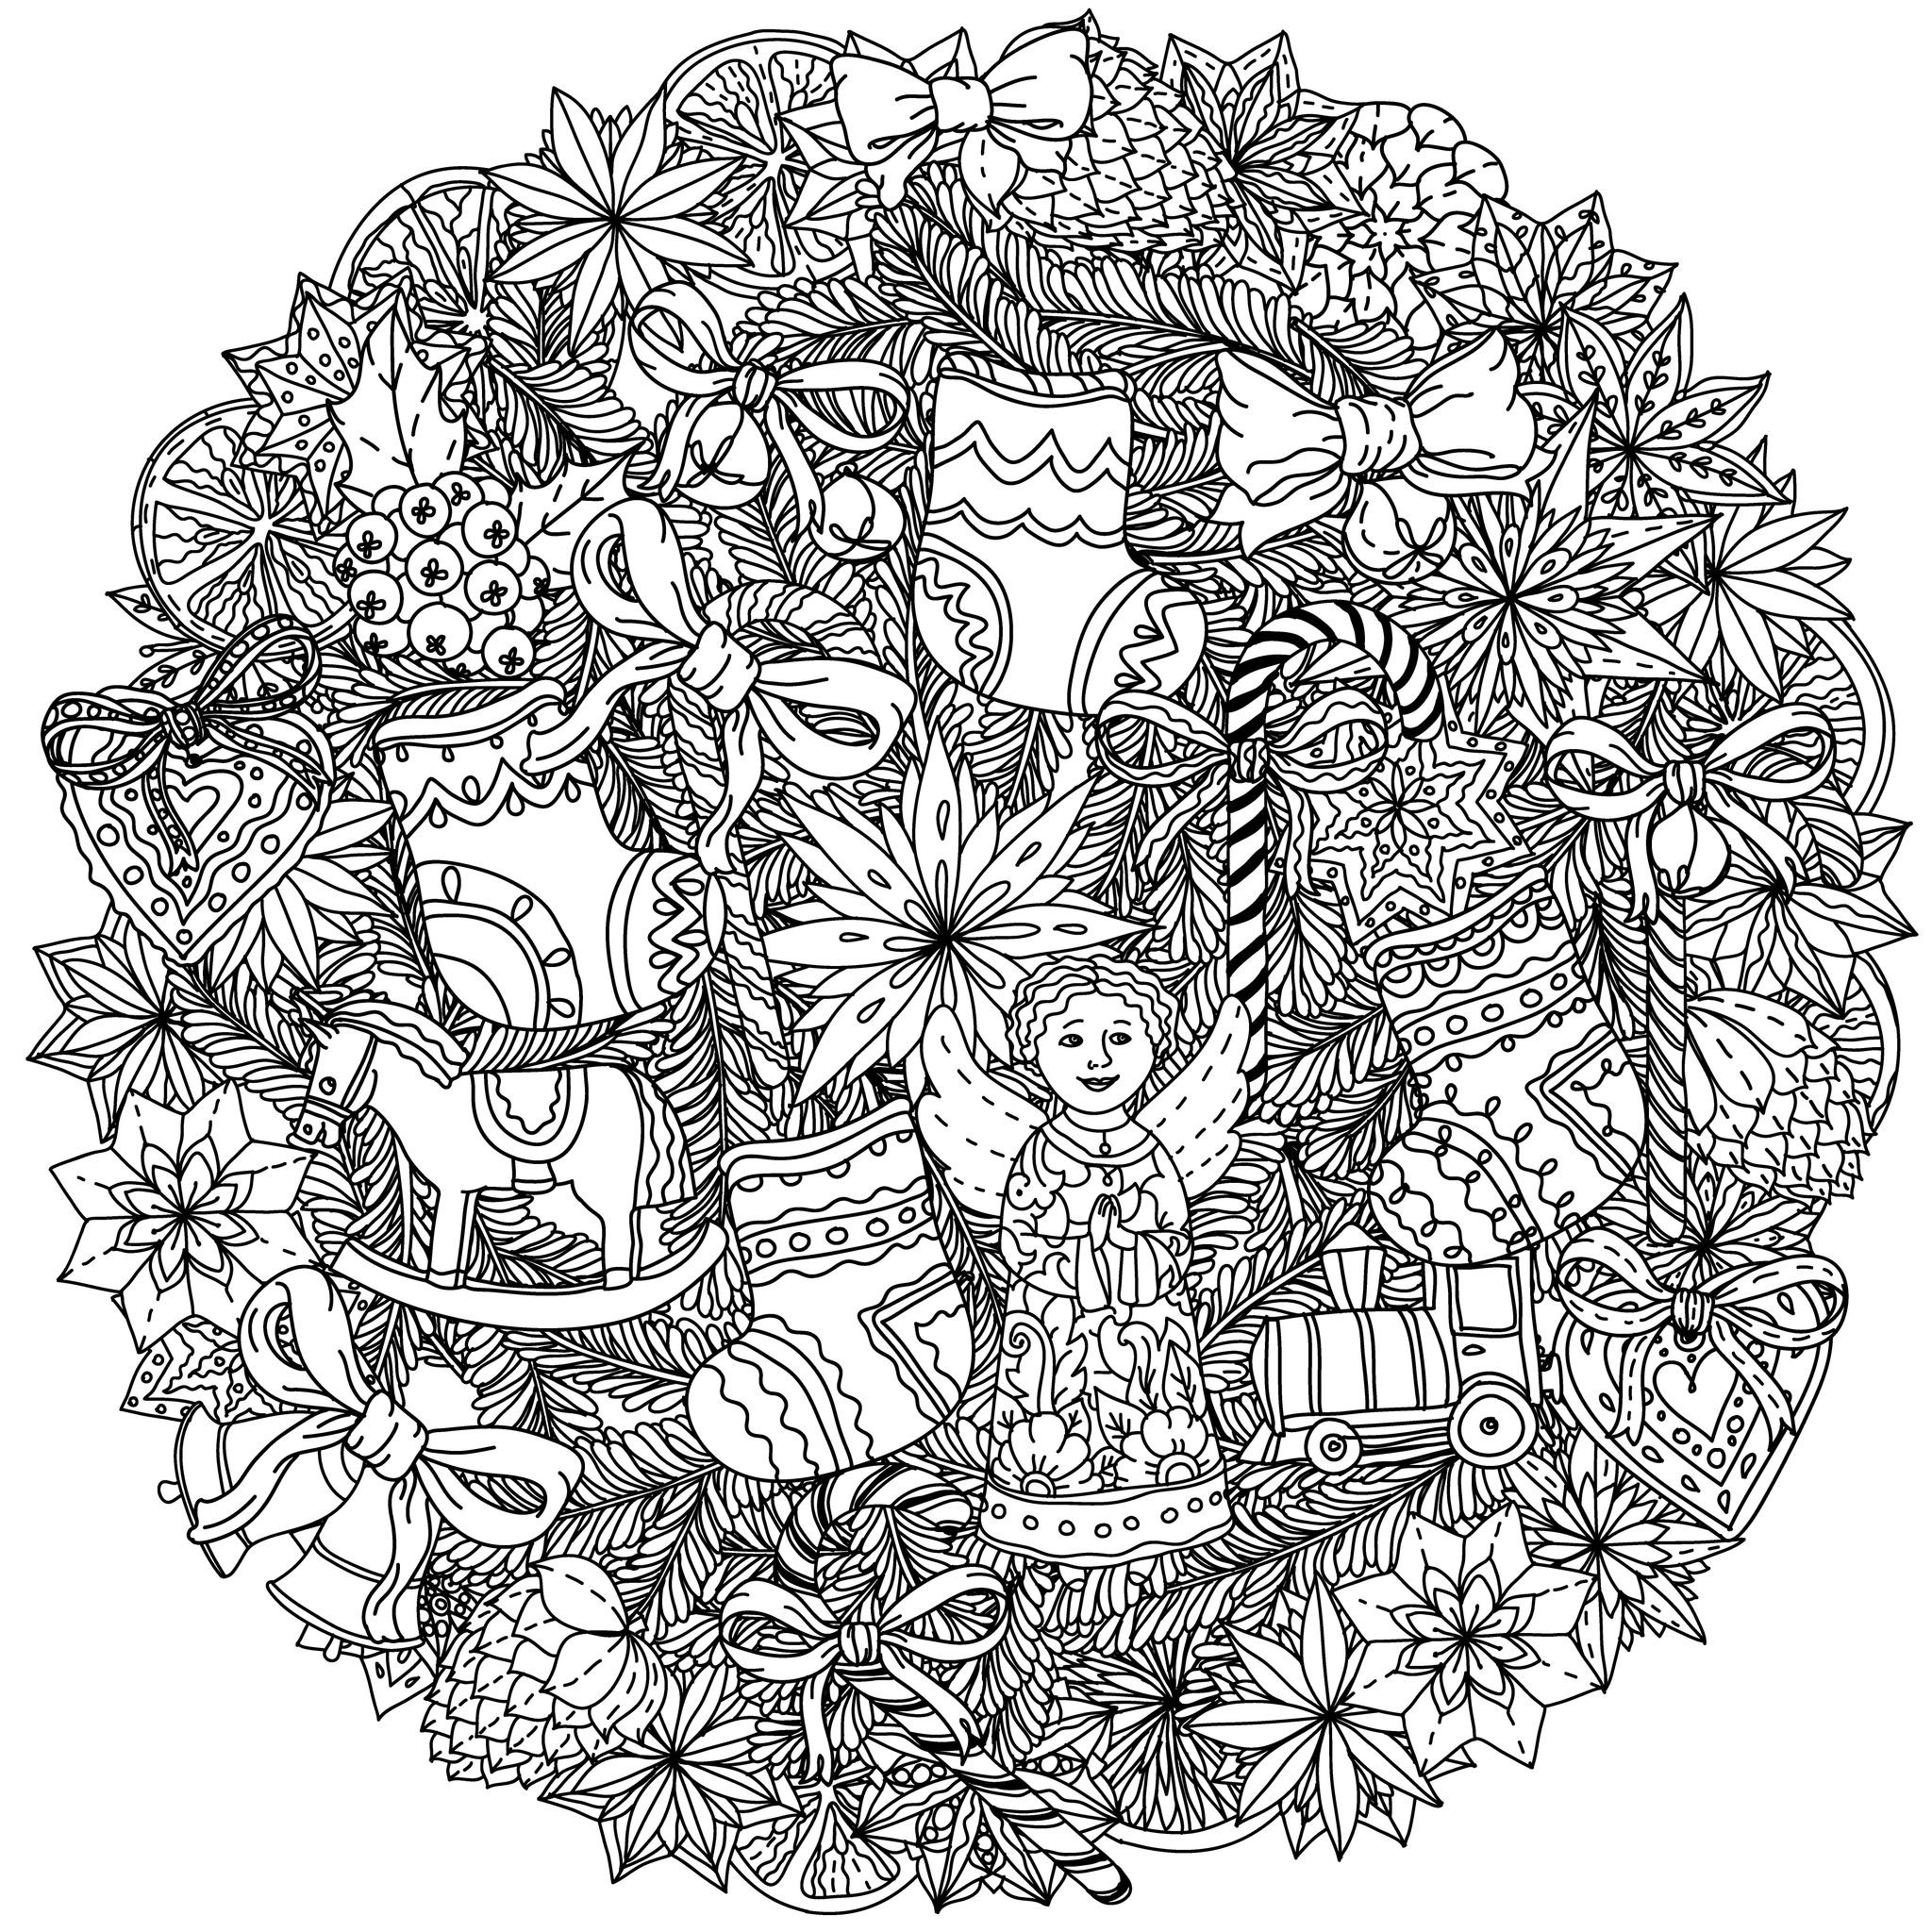 Best ideas about Adult Christmas Coloring Books . Save or Pin Christmas mandala Christmas Adult Coloring Pages Now.